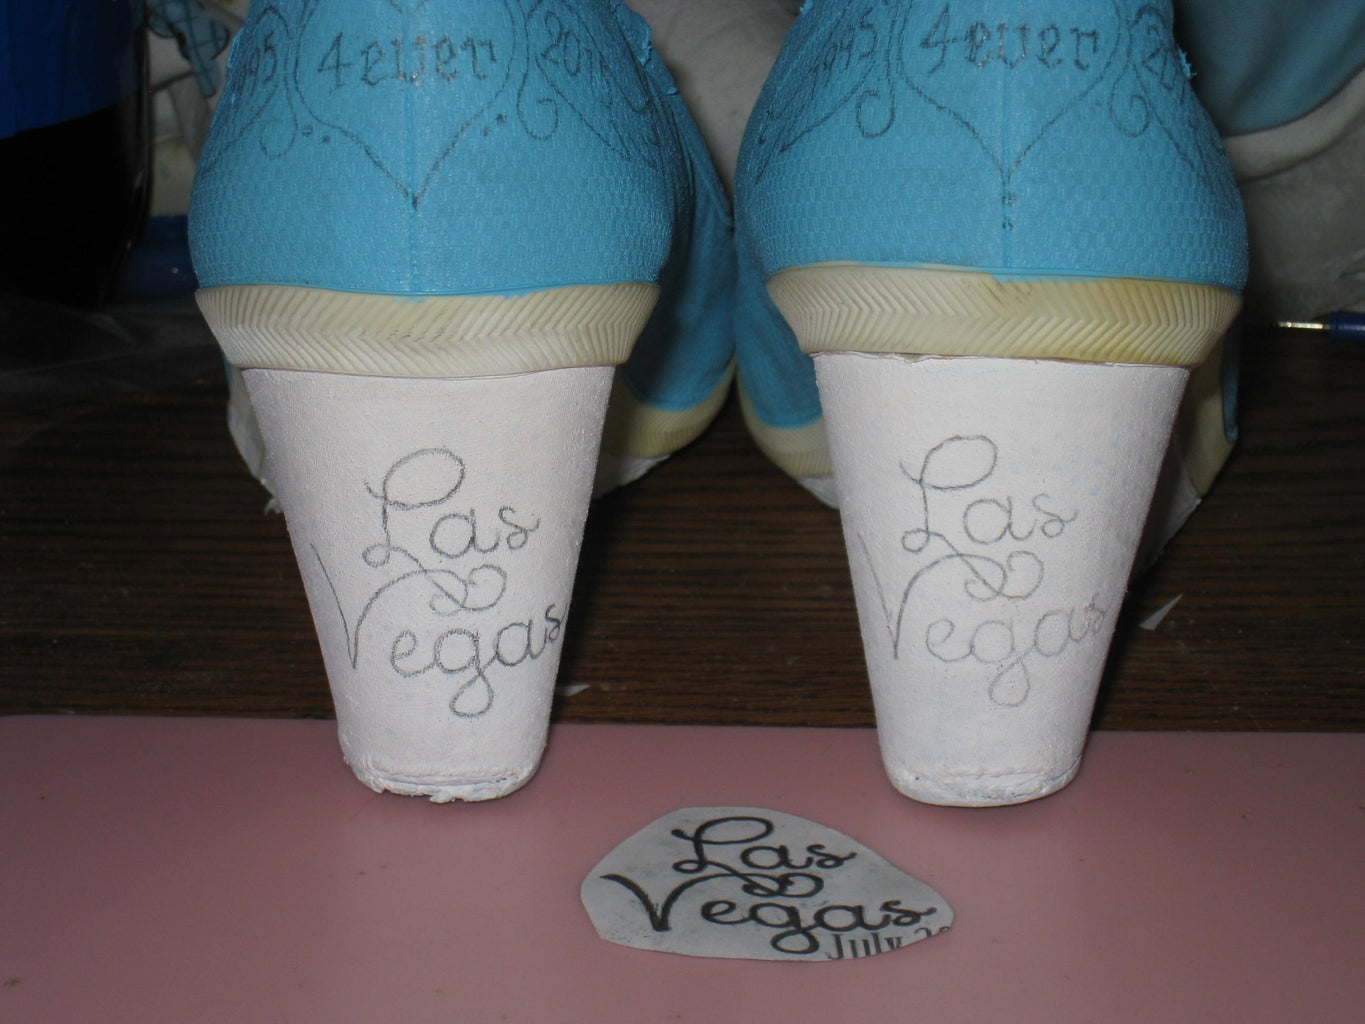 Tranfering Your Designs to the Shoes...